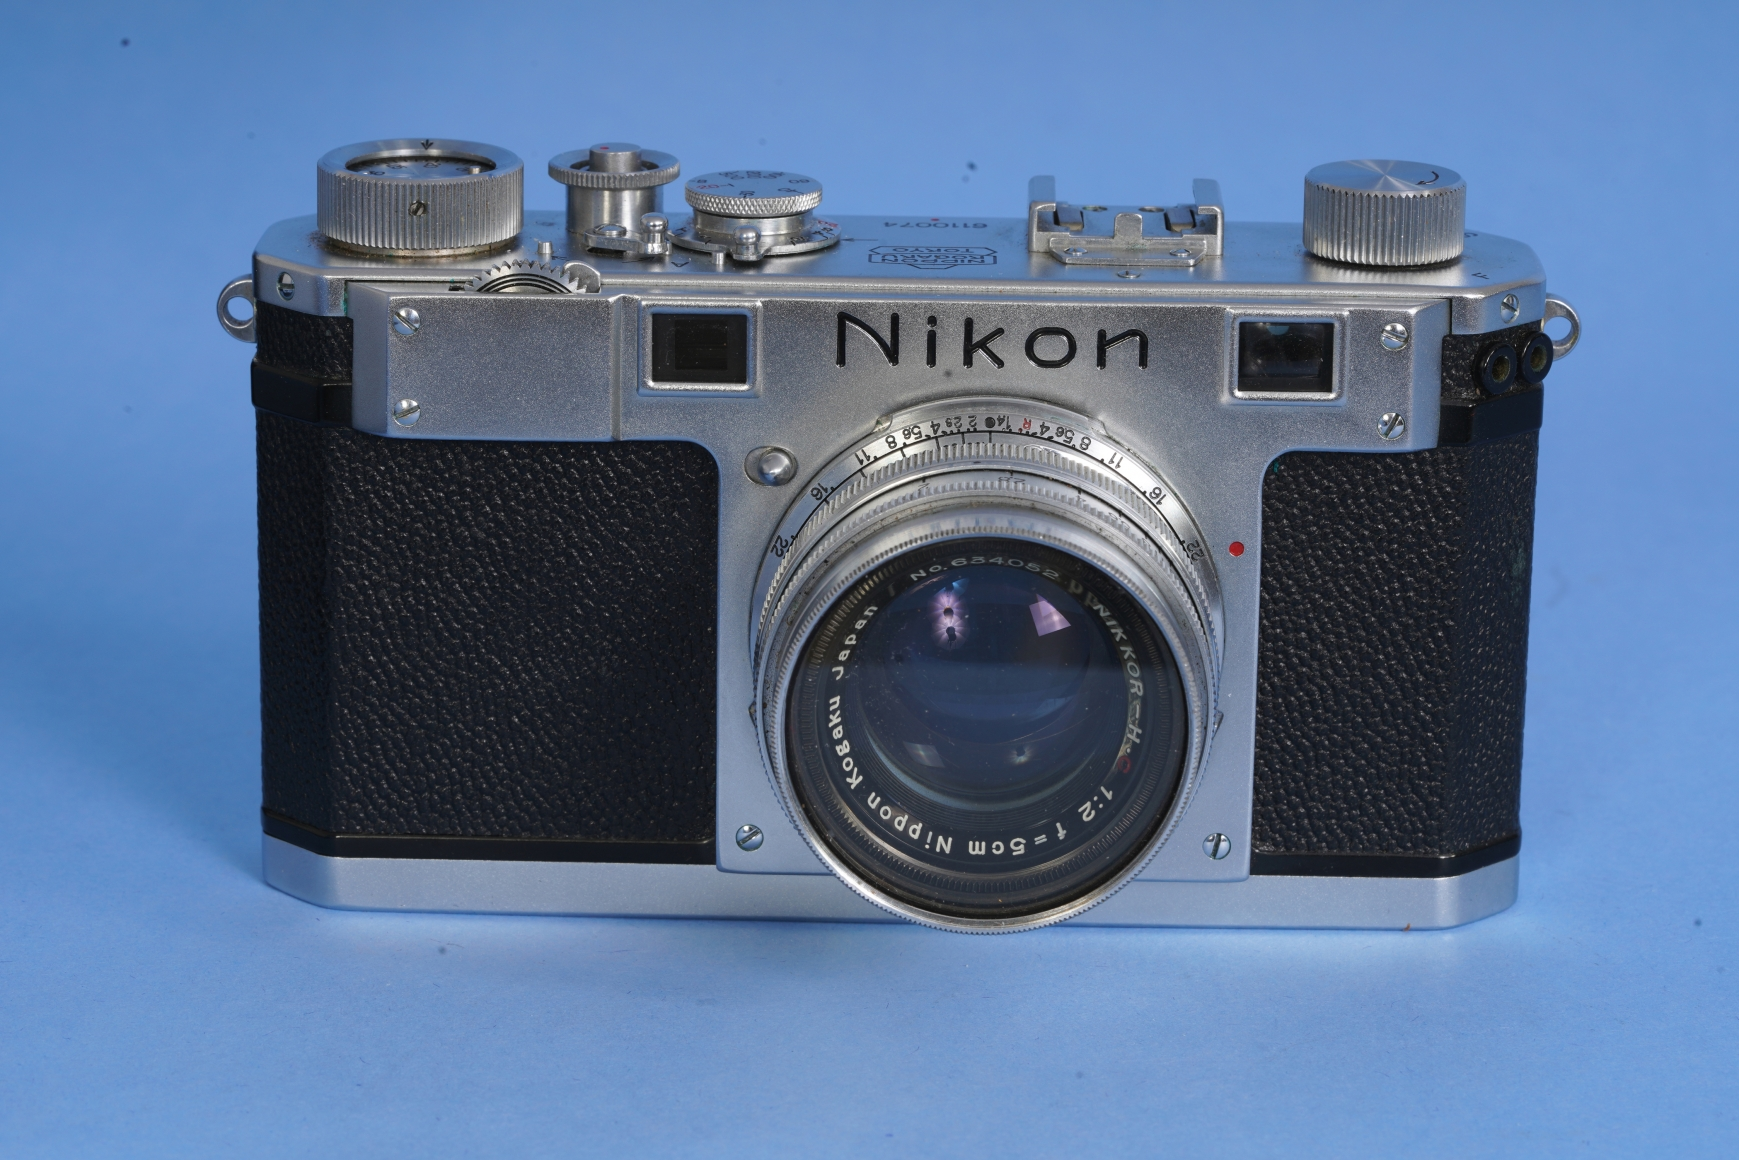 Nikon S Silver Camera Serial Number #6110074 with Nikkor F2